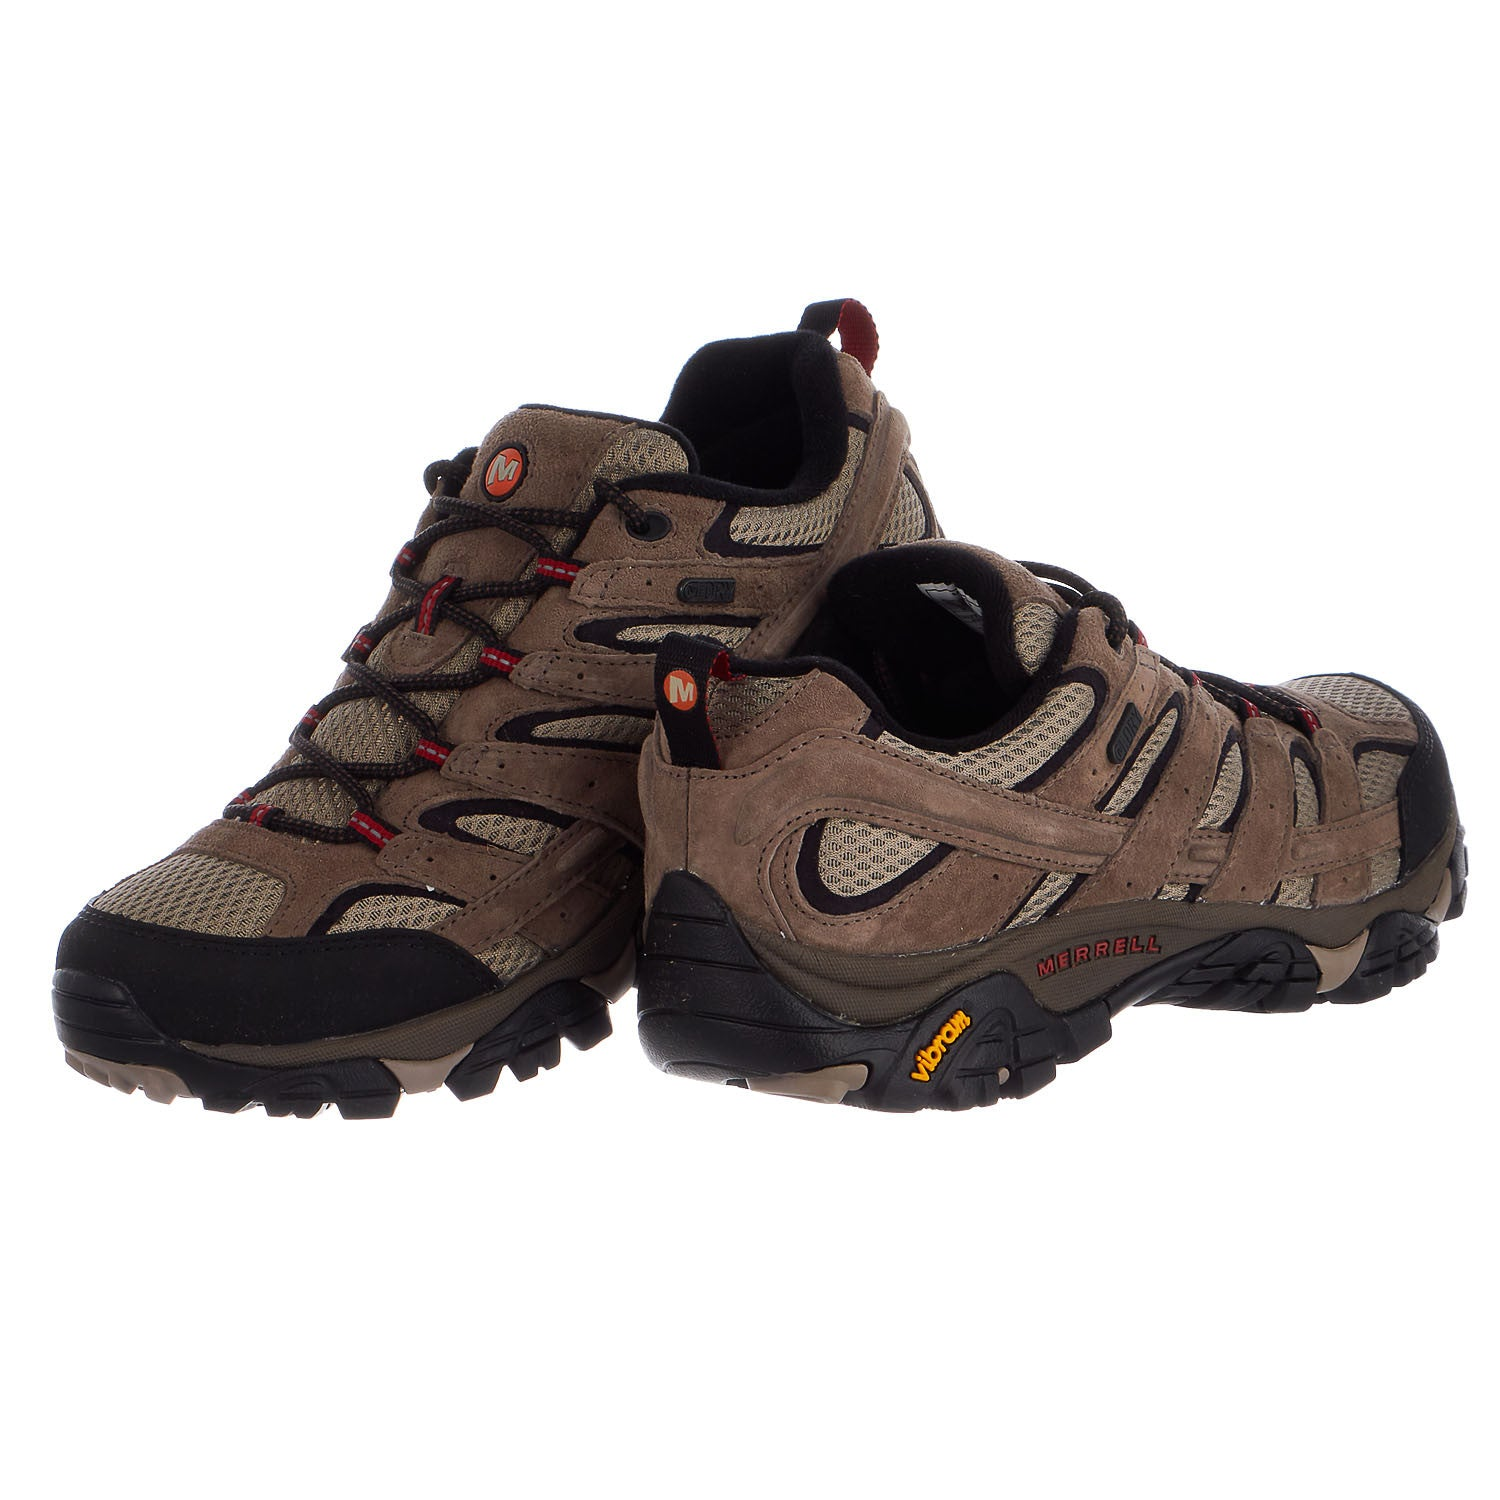 merrell moab 2 hiking boot 0.5